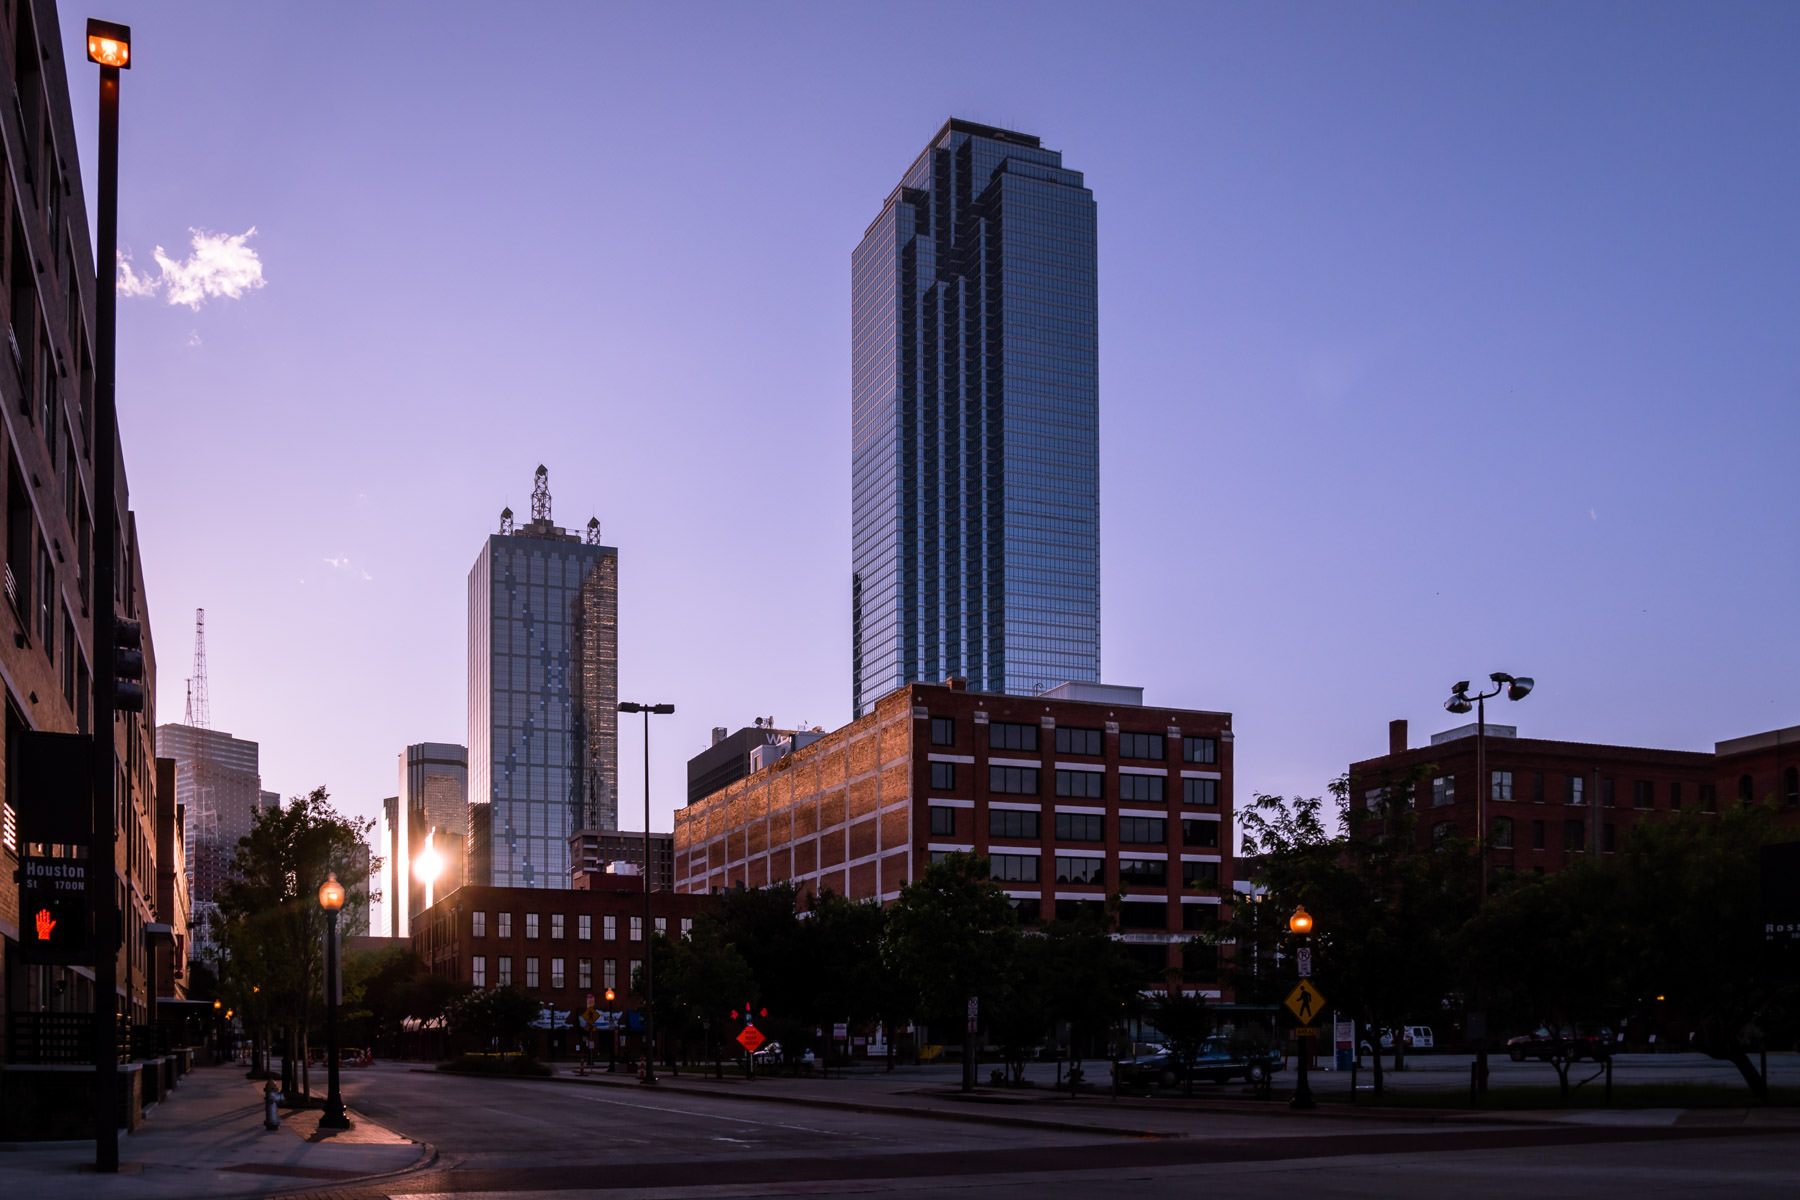 The morning sun glints off Downtown Dallas' LTV Tower as its first light illuminates the city.